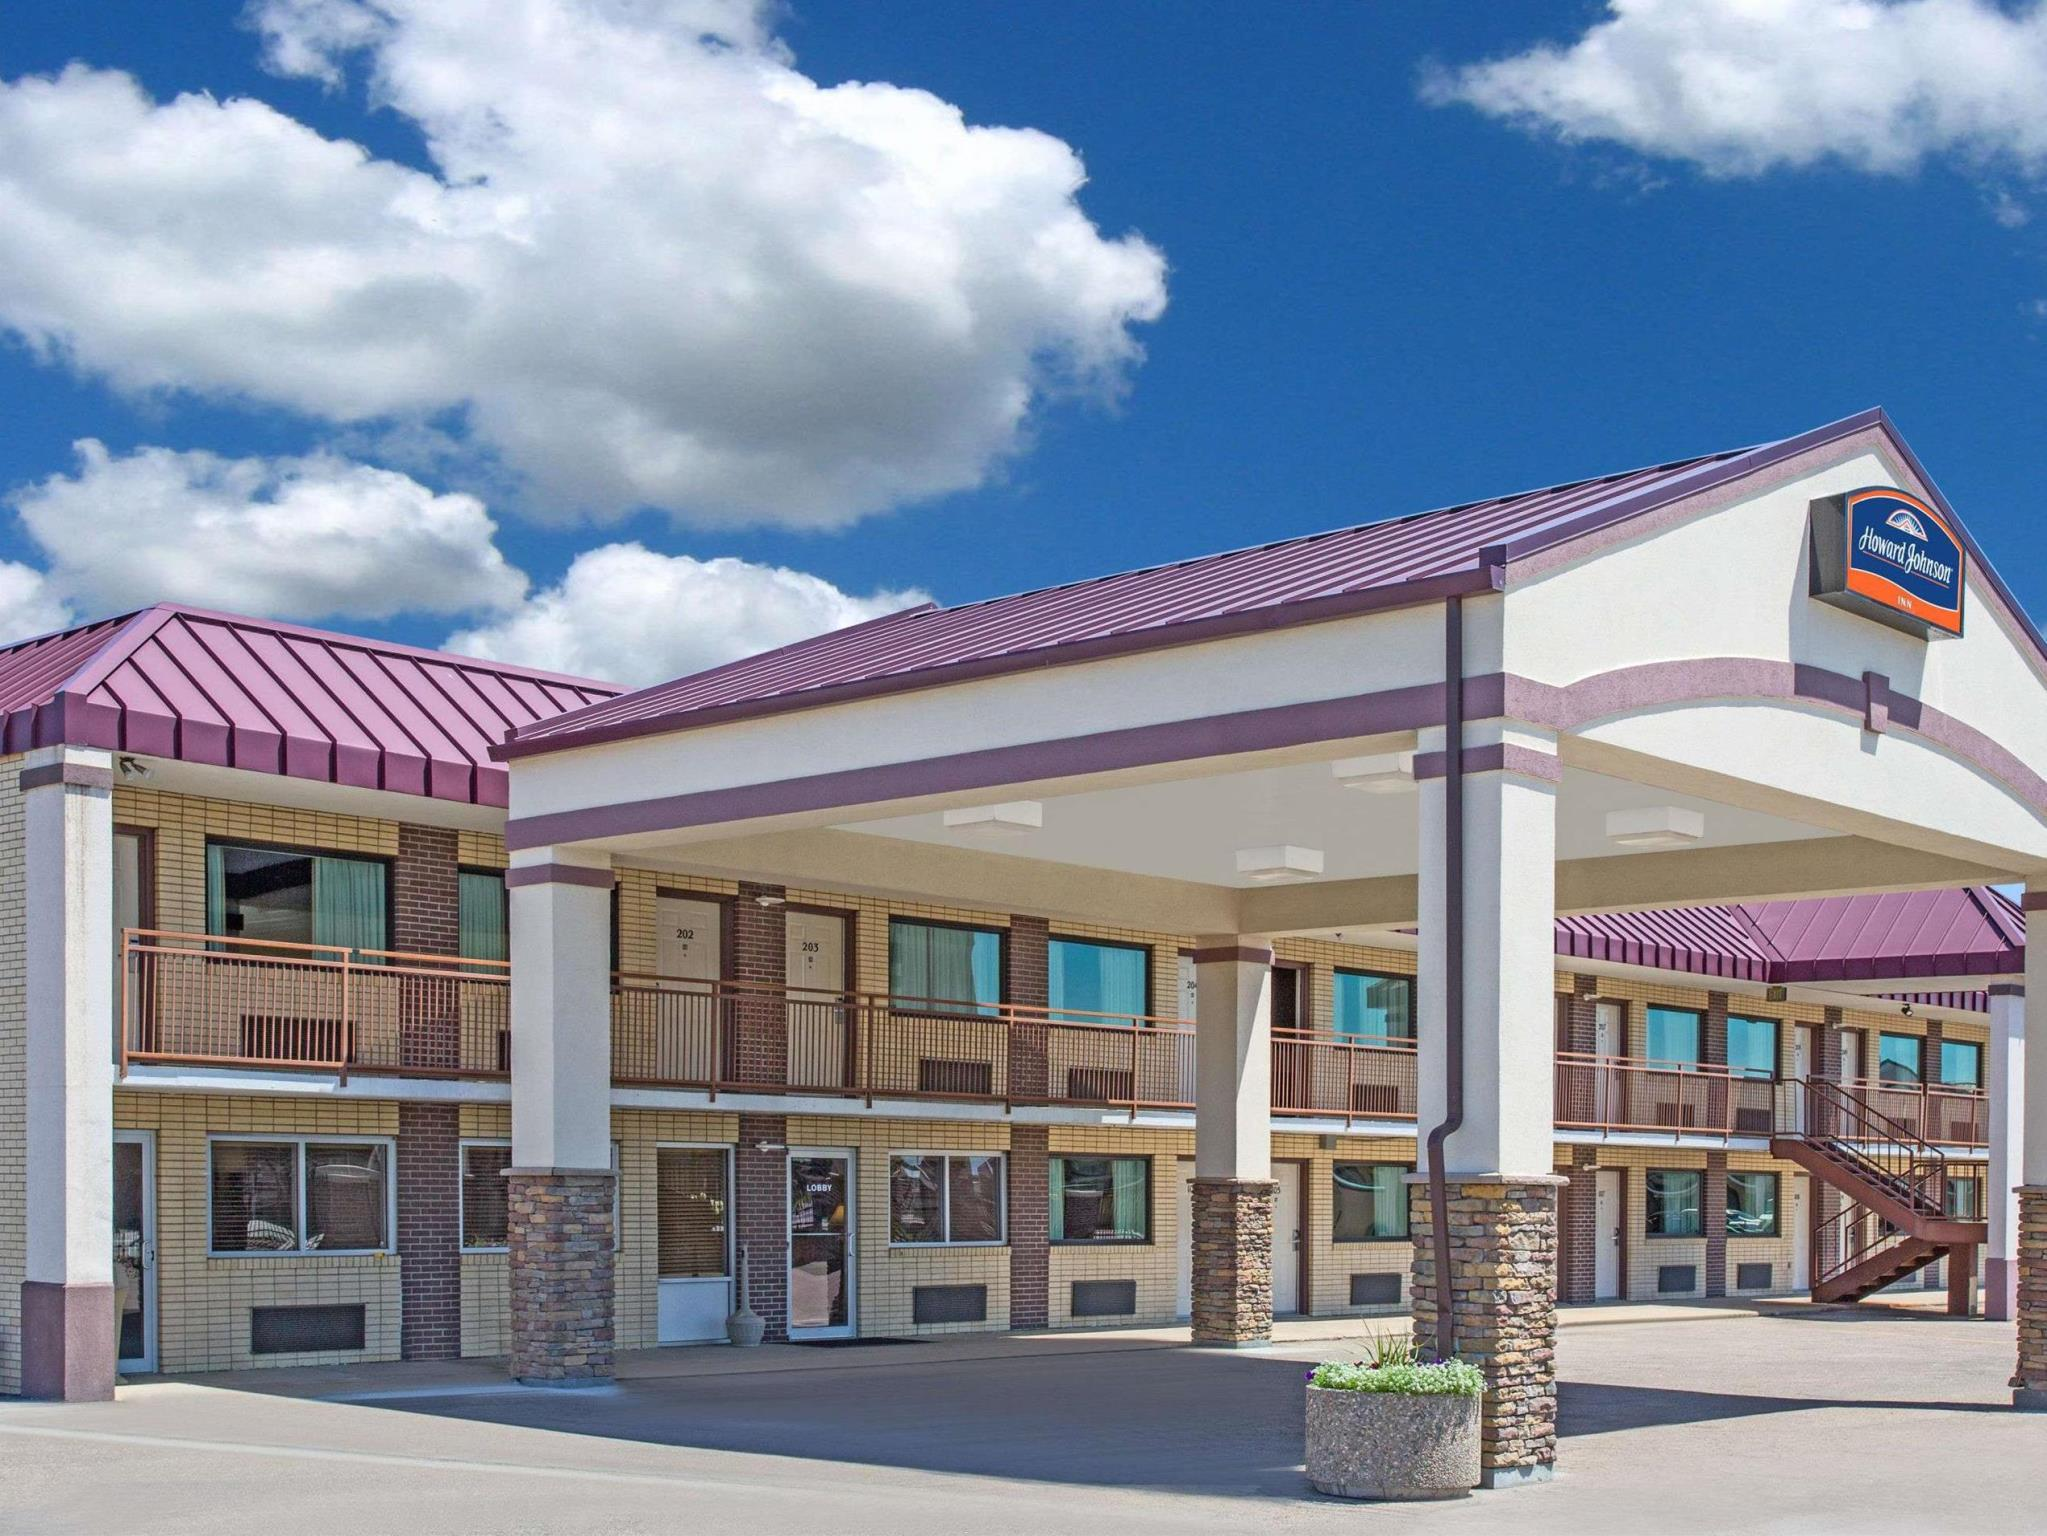 North Platte Inn and Suites, Lincoln